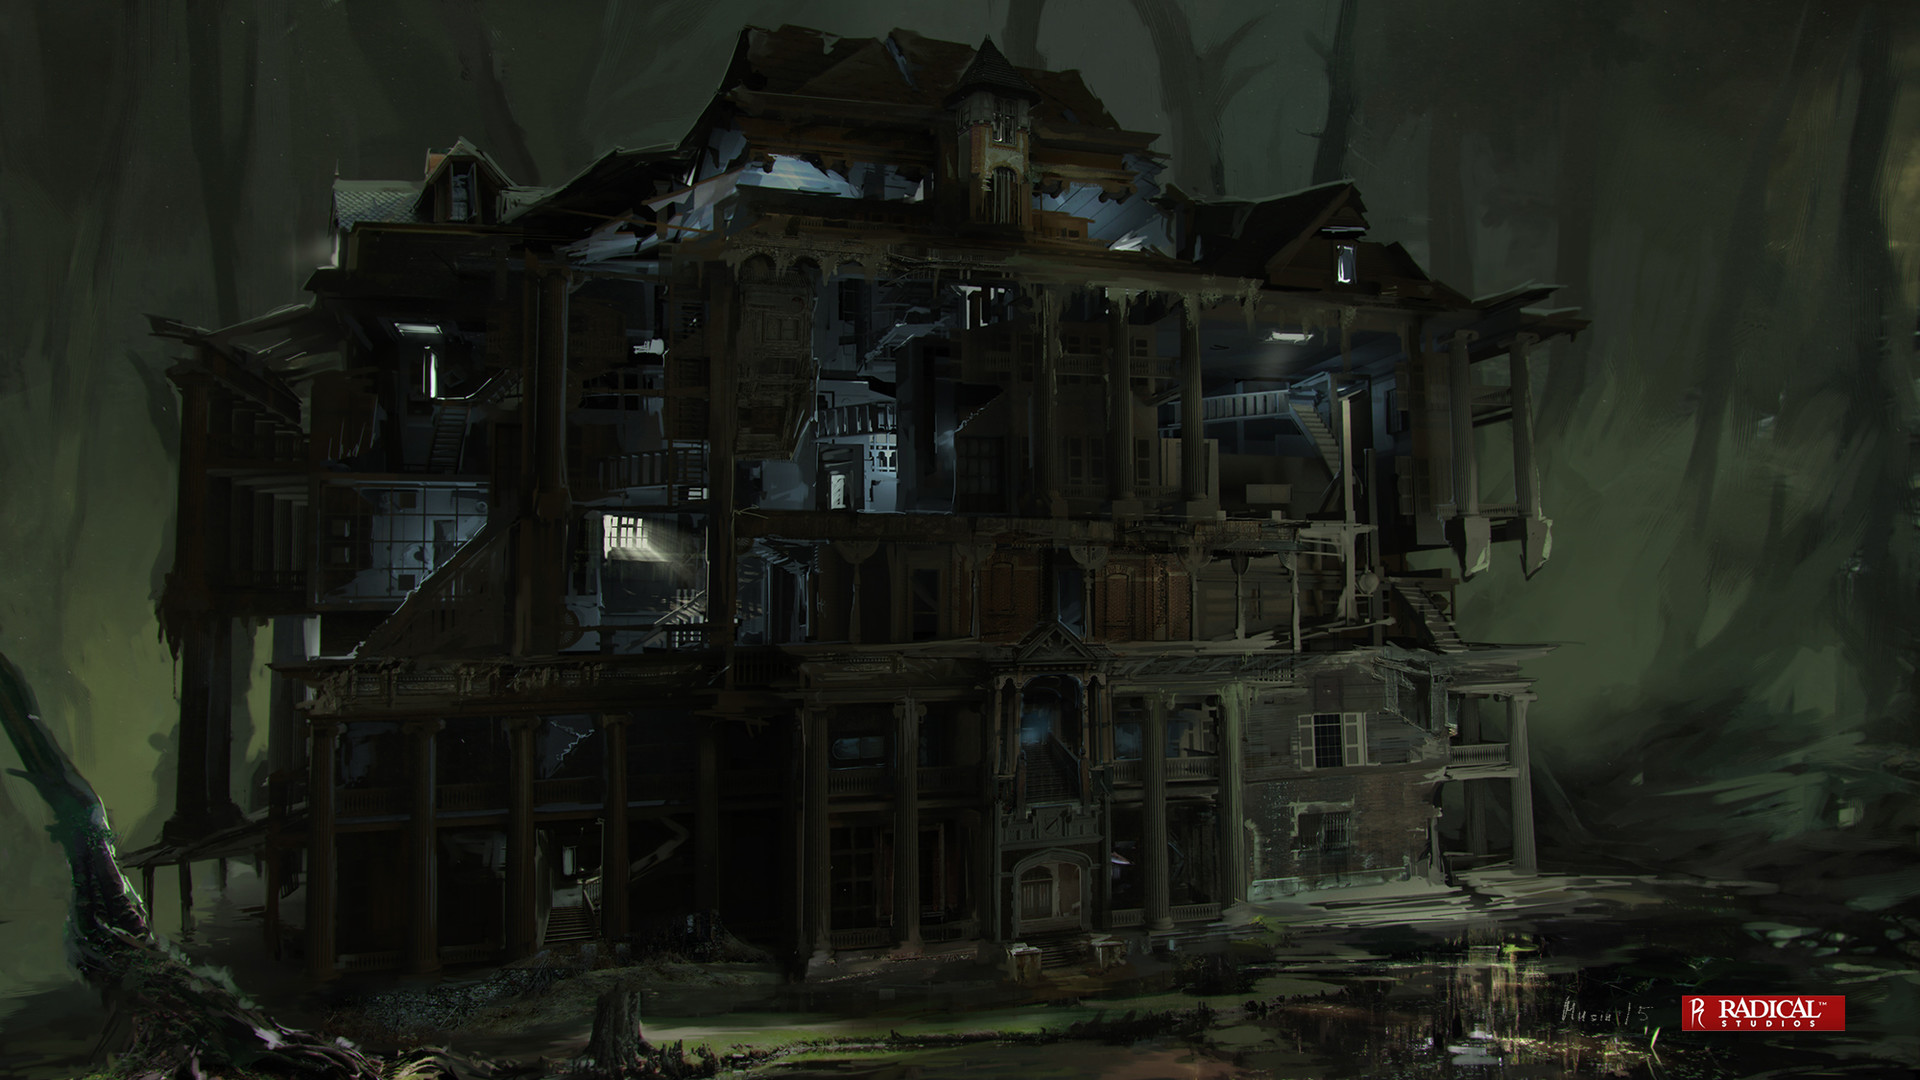 Sergey musin abattoir concept face wholehouse 01